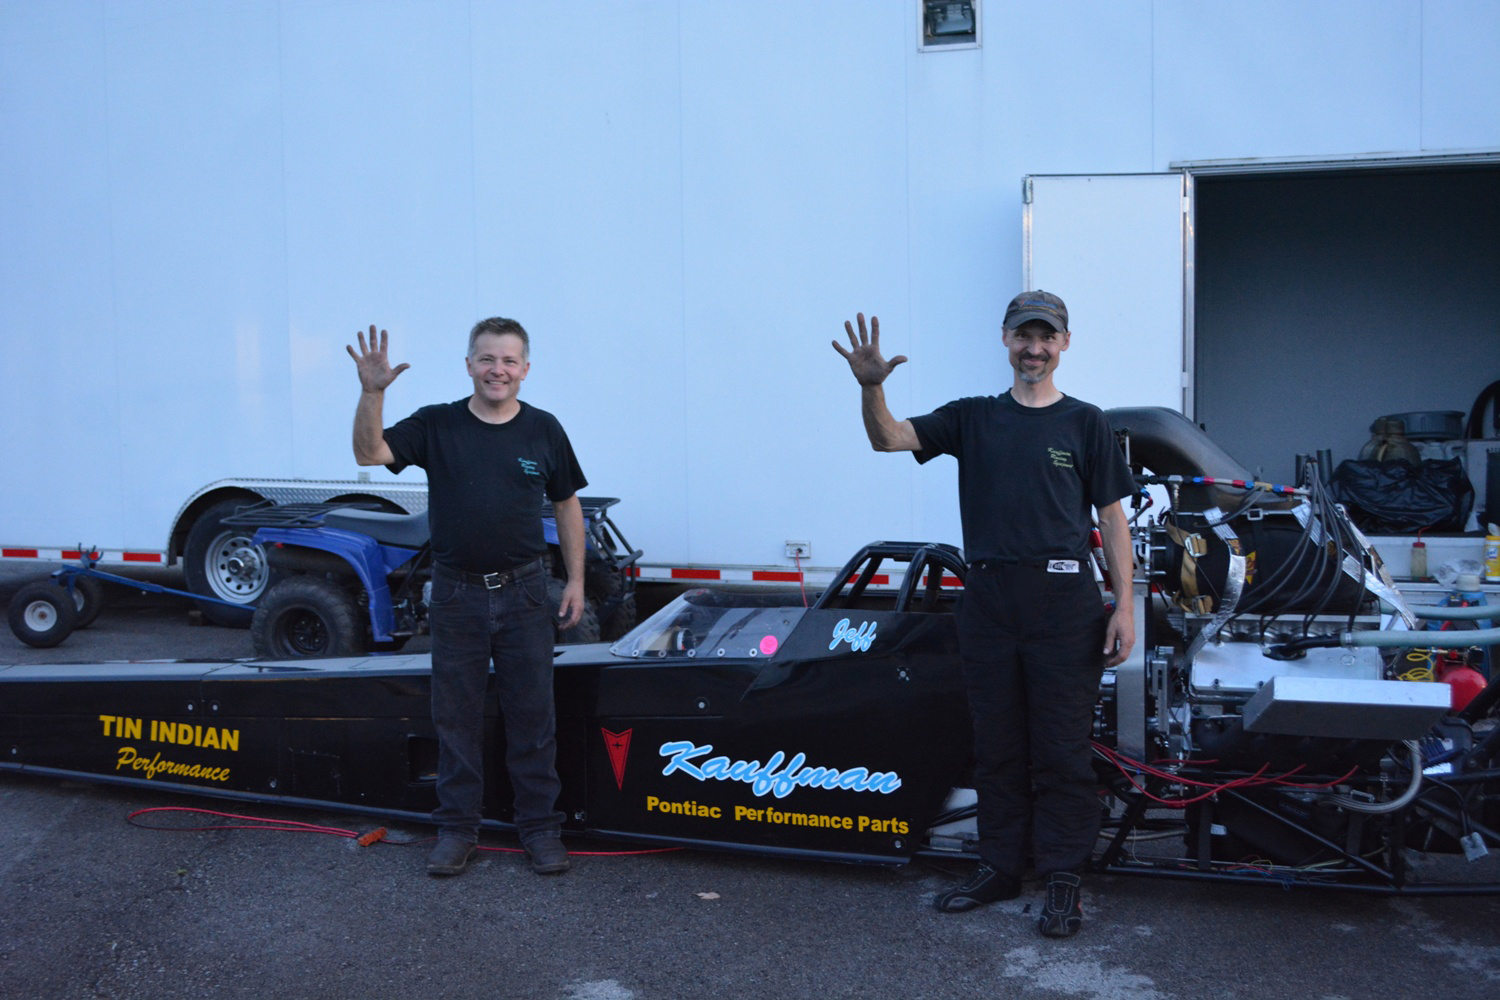 Jeff and Mark Kauffman after the first 5 second Pontiac pass